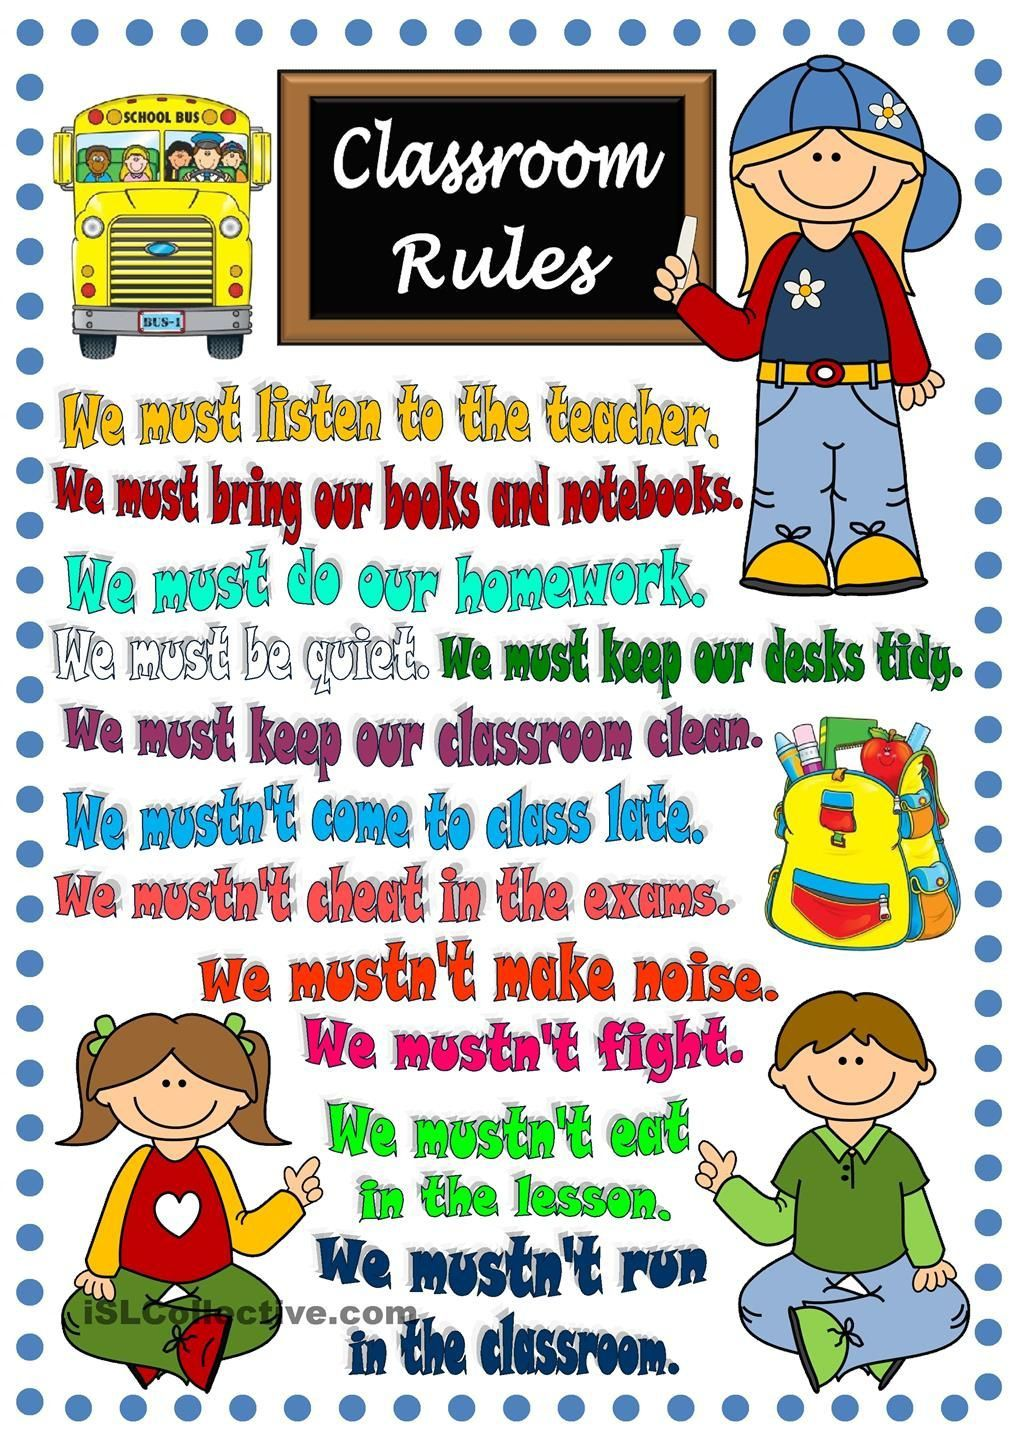 Yes or No:  RULES, RULES, RULES!